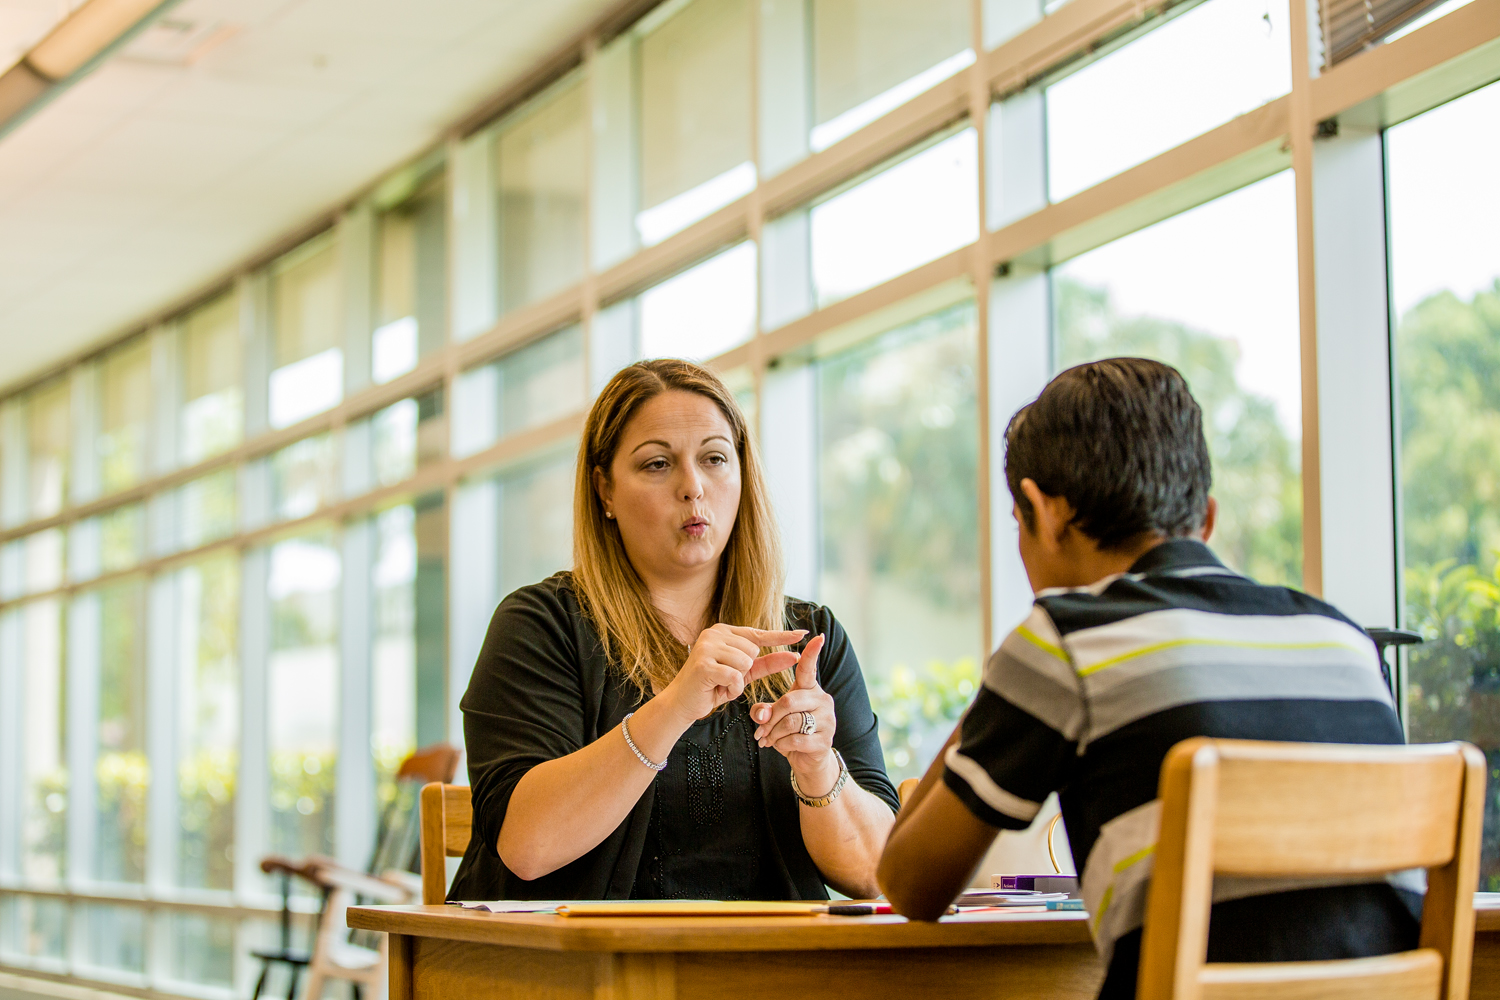 Private 1 on 1 tutoring - English is one of the most complex languages. We offer specialized tutoring, concentrating in the breakdown of English syntax, for the Deaf and Hard of hearing.For more information please call, text, or email.